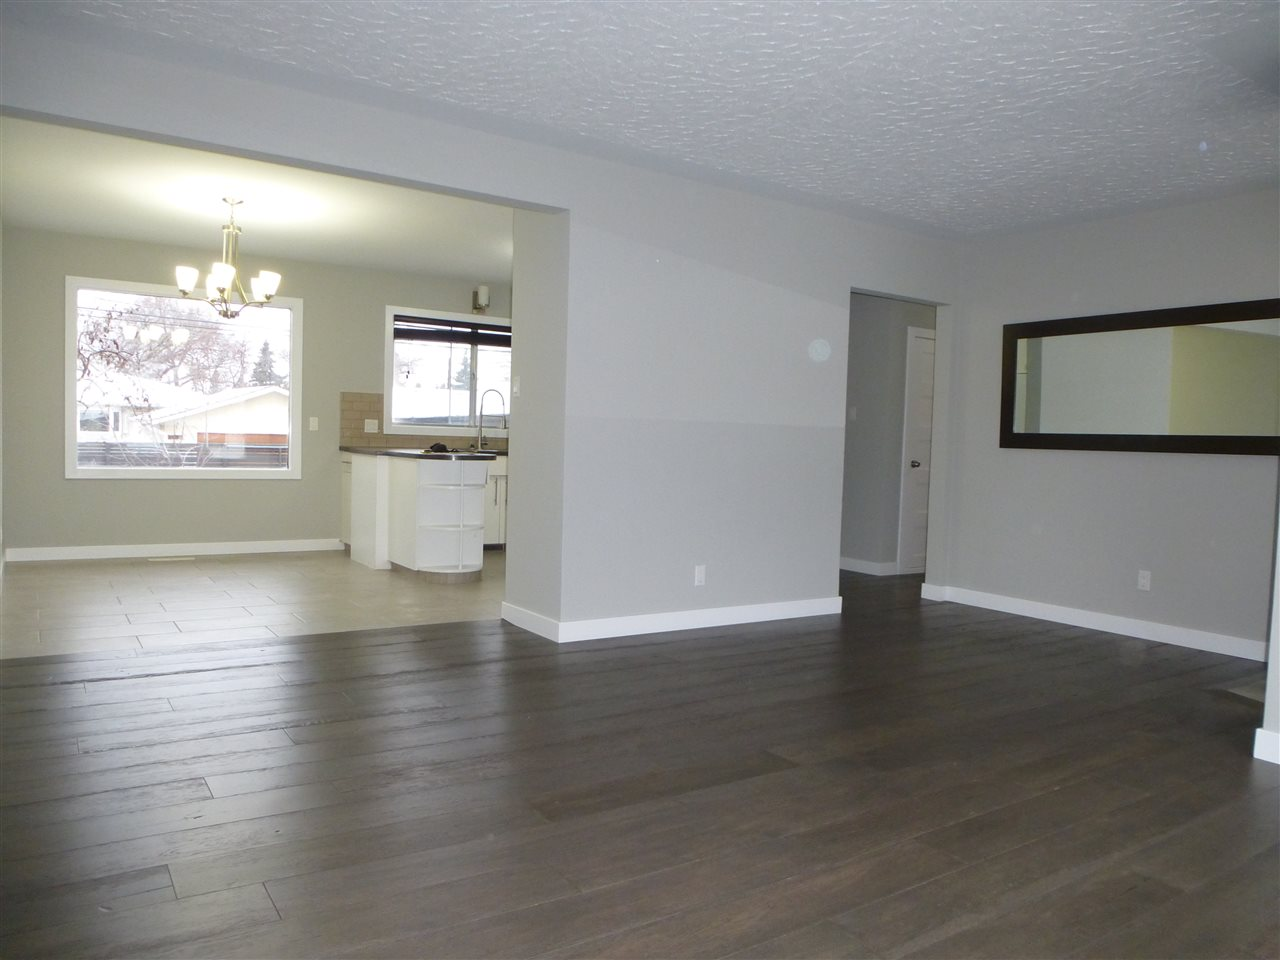 Photo 5: 8810 159A ST NW in Edmonton: Zone 22 House for sale : MLS® # E4044366